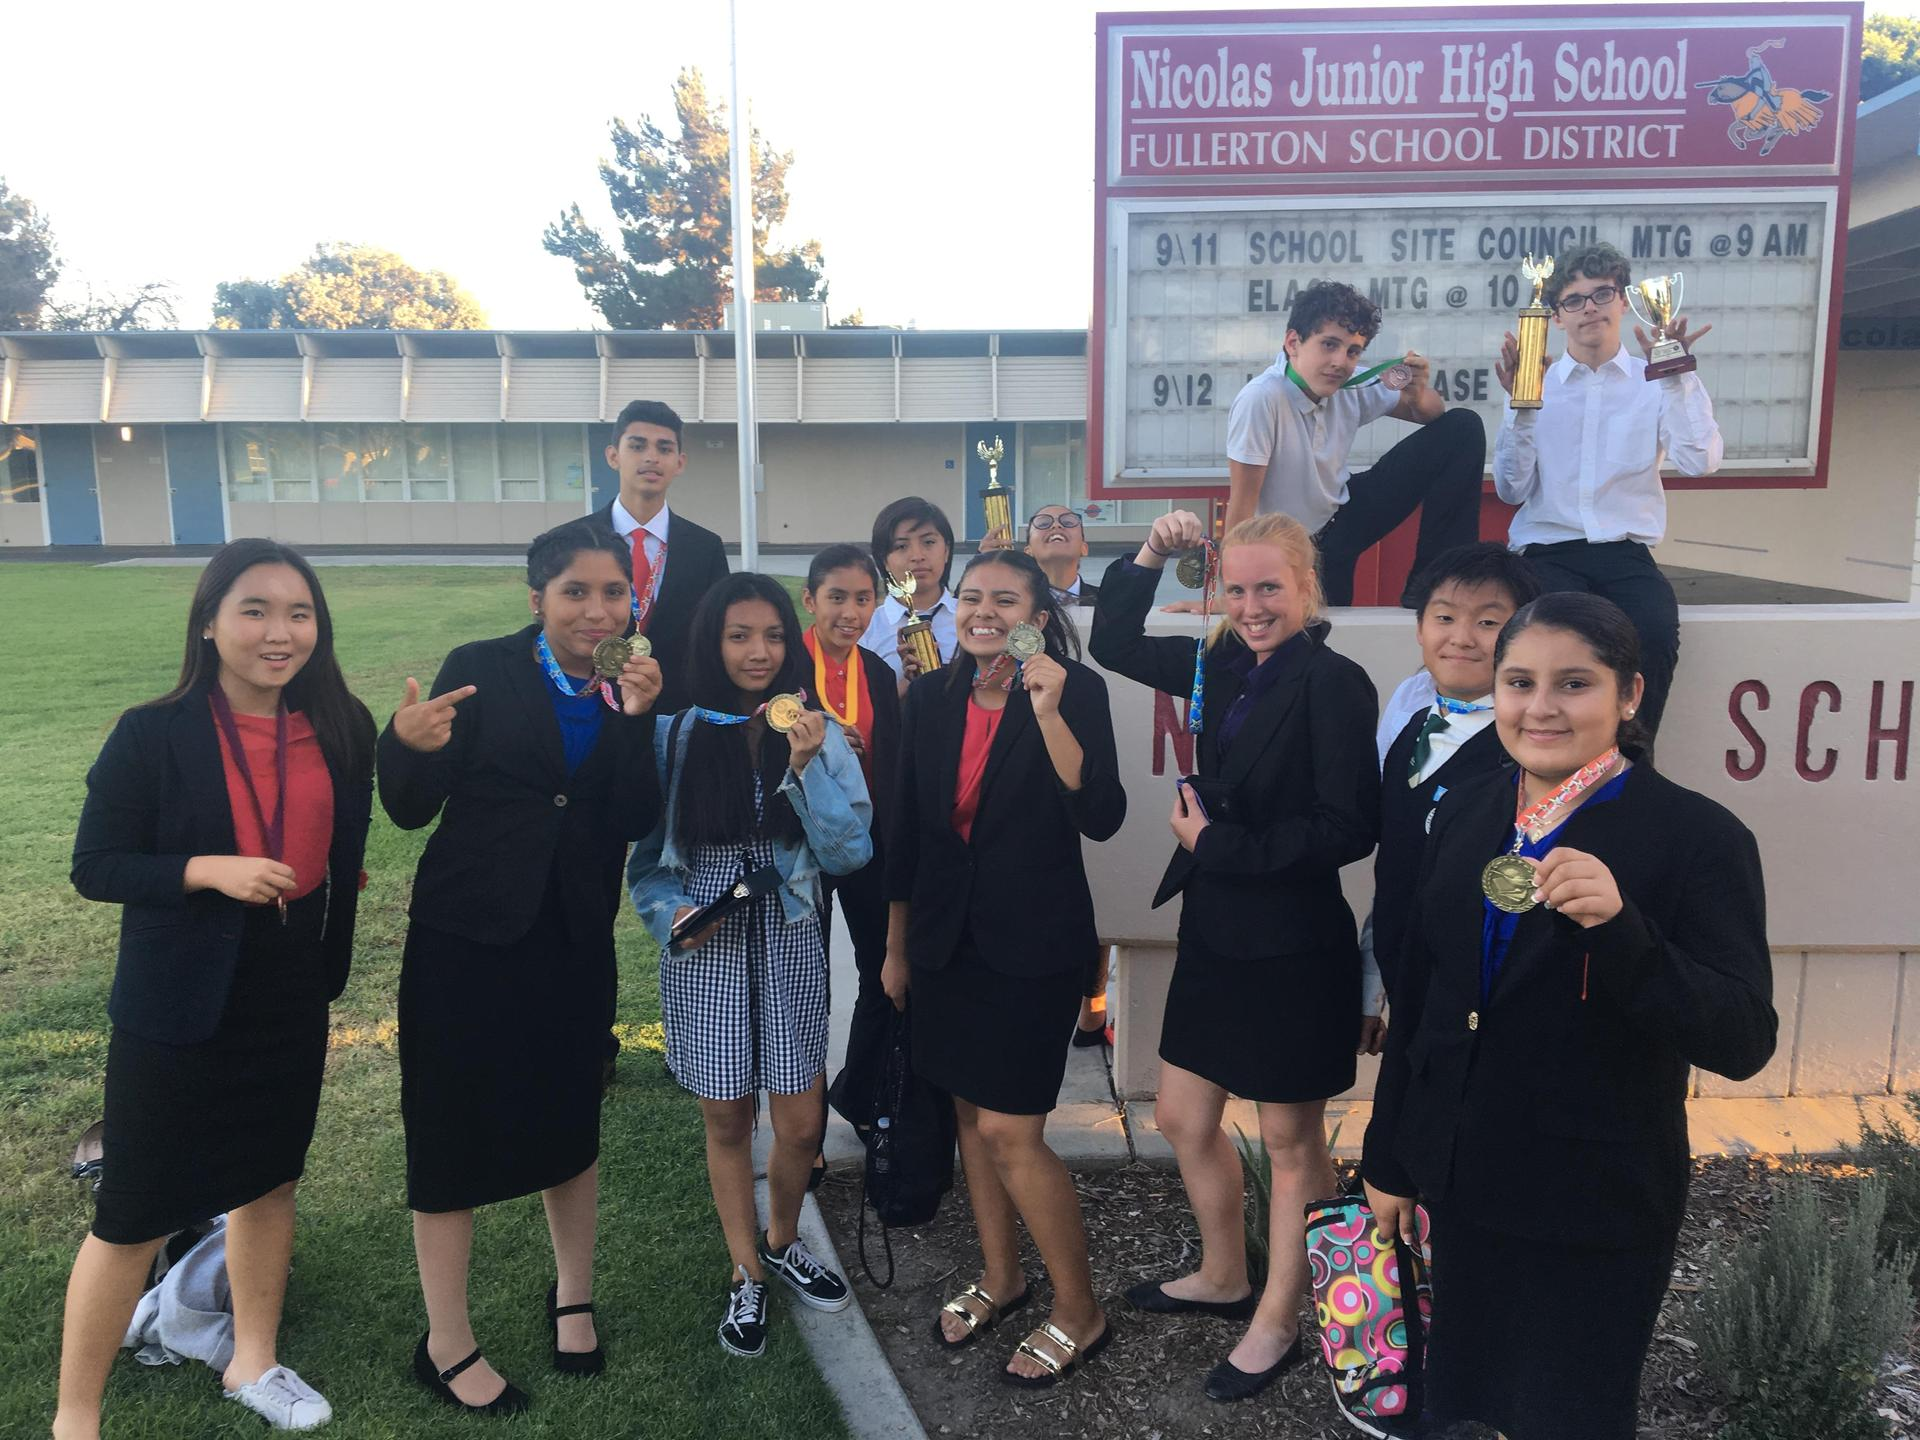 Students posing